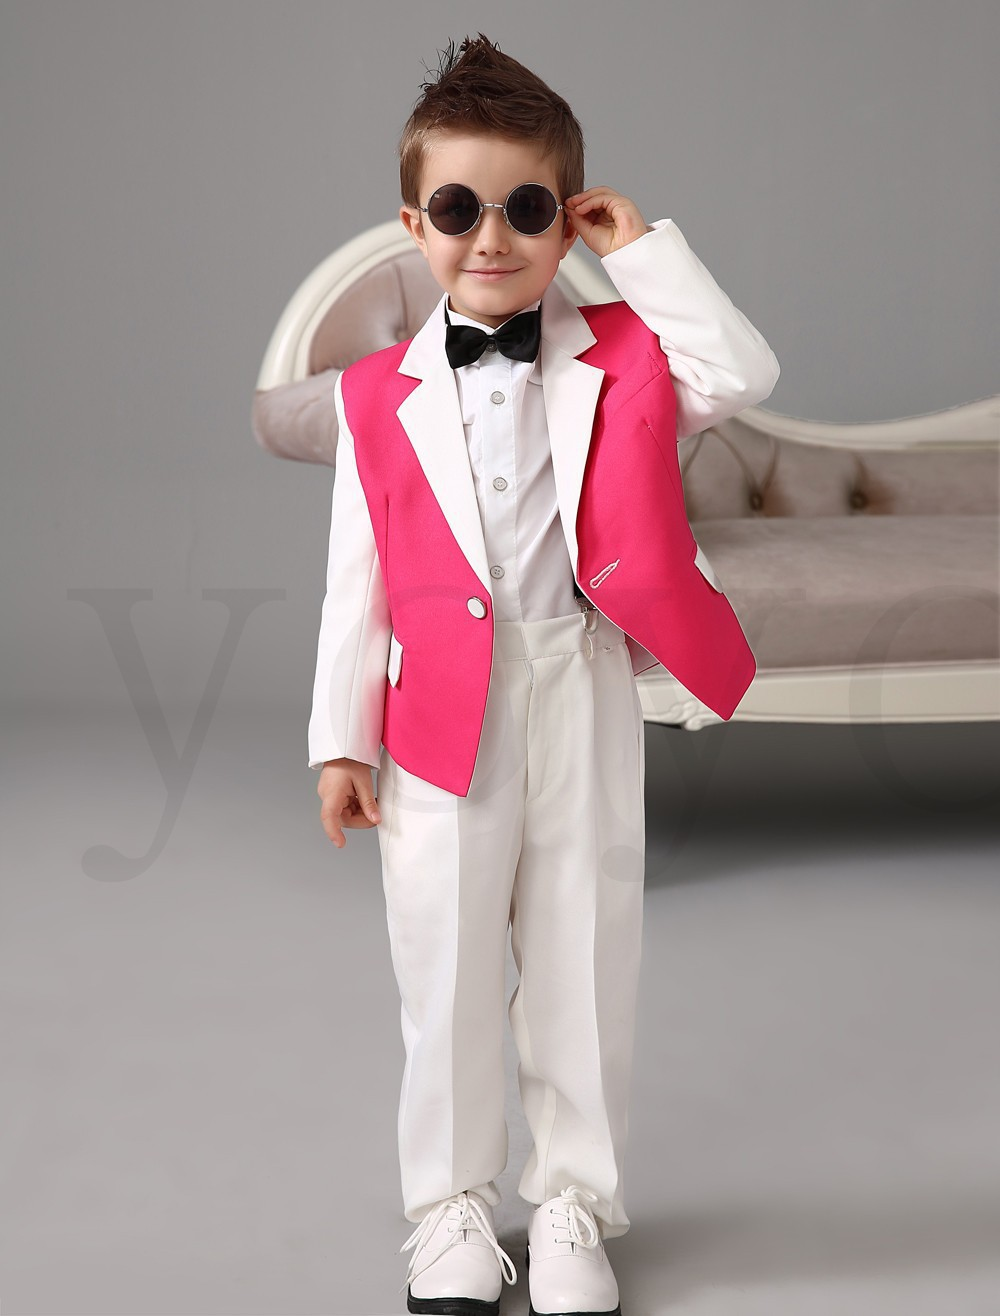 2015 White Pink Boys Tuxedos Wedding Attire Baby Boy Dress